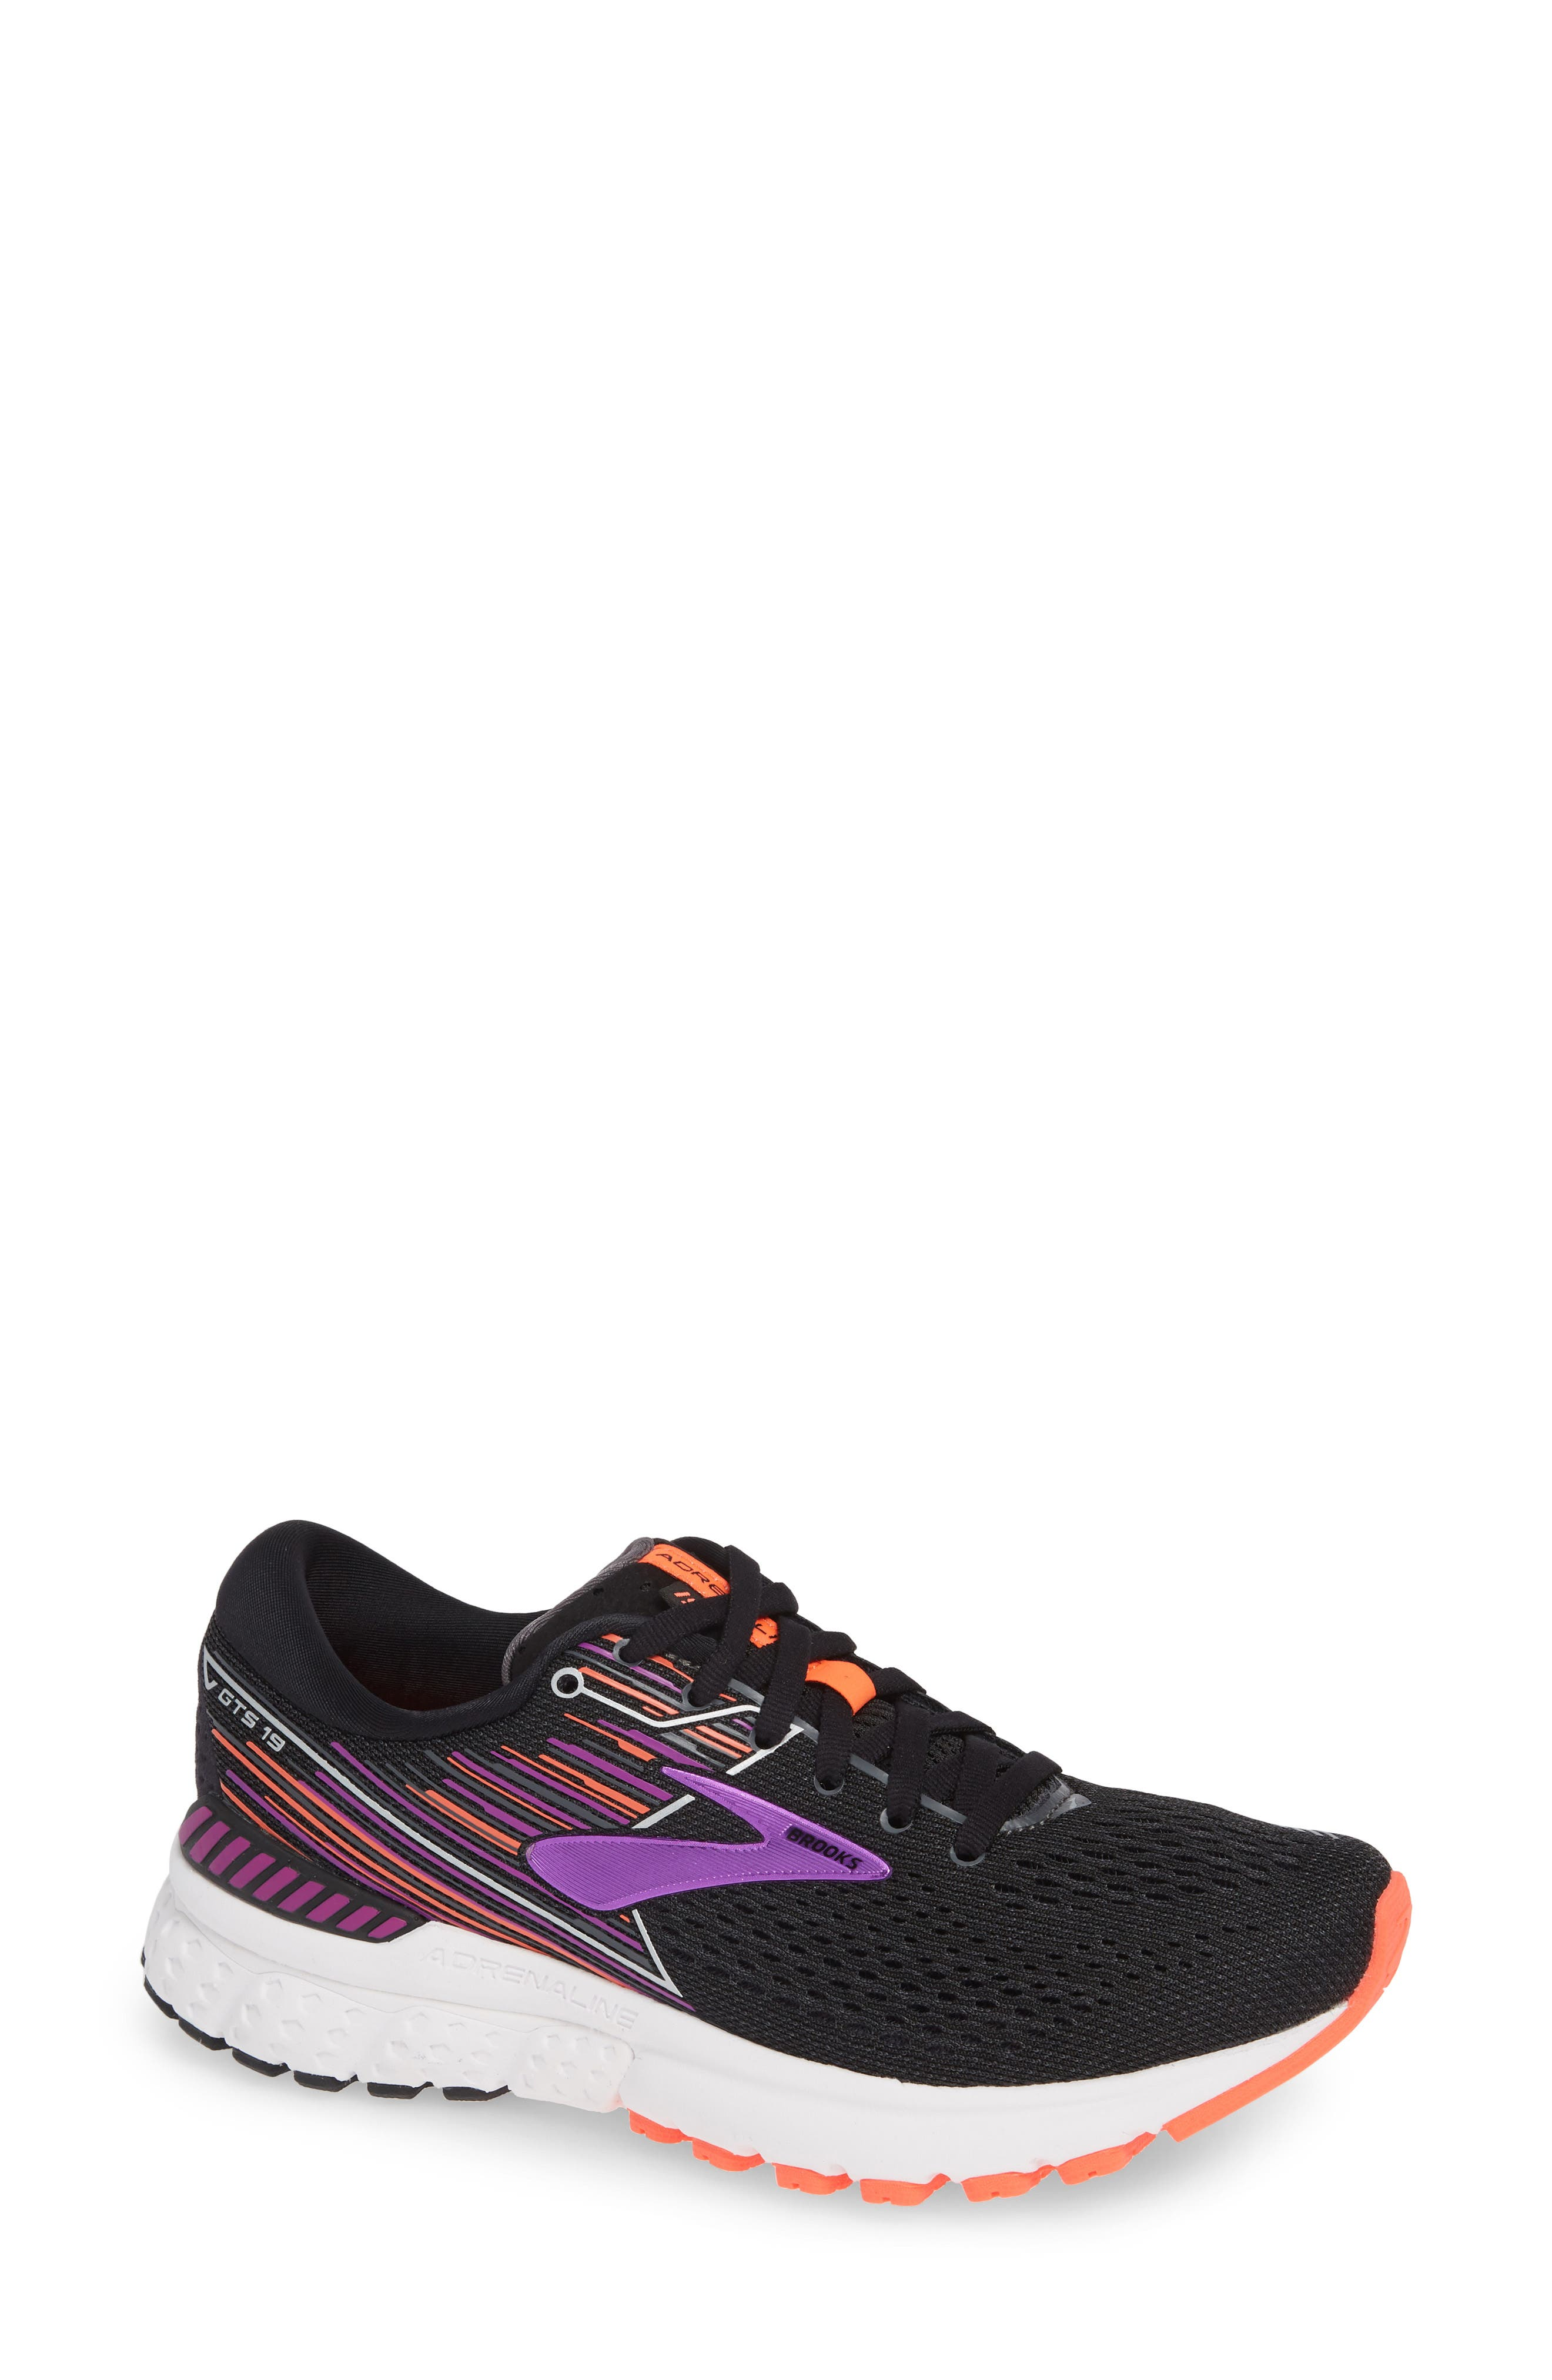 BROOKS Adrenaline GTS 19 Running Shoe, Main, color, BLACK/ PURPLE/ CORAL